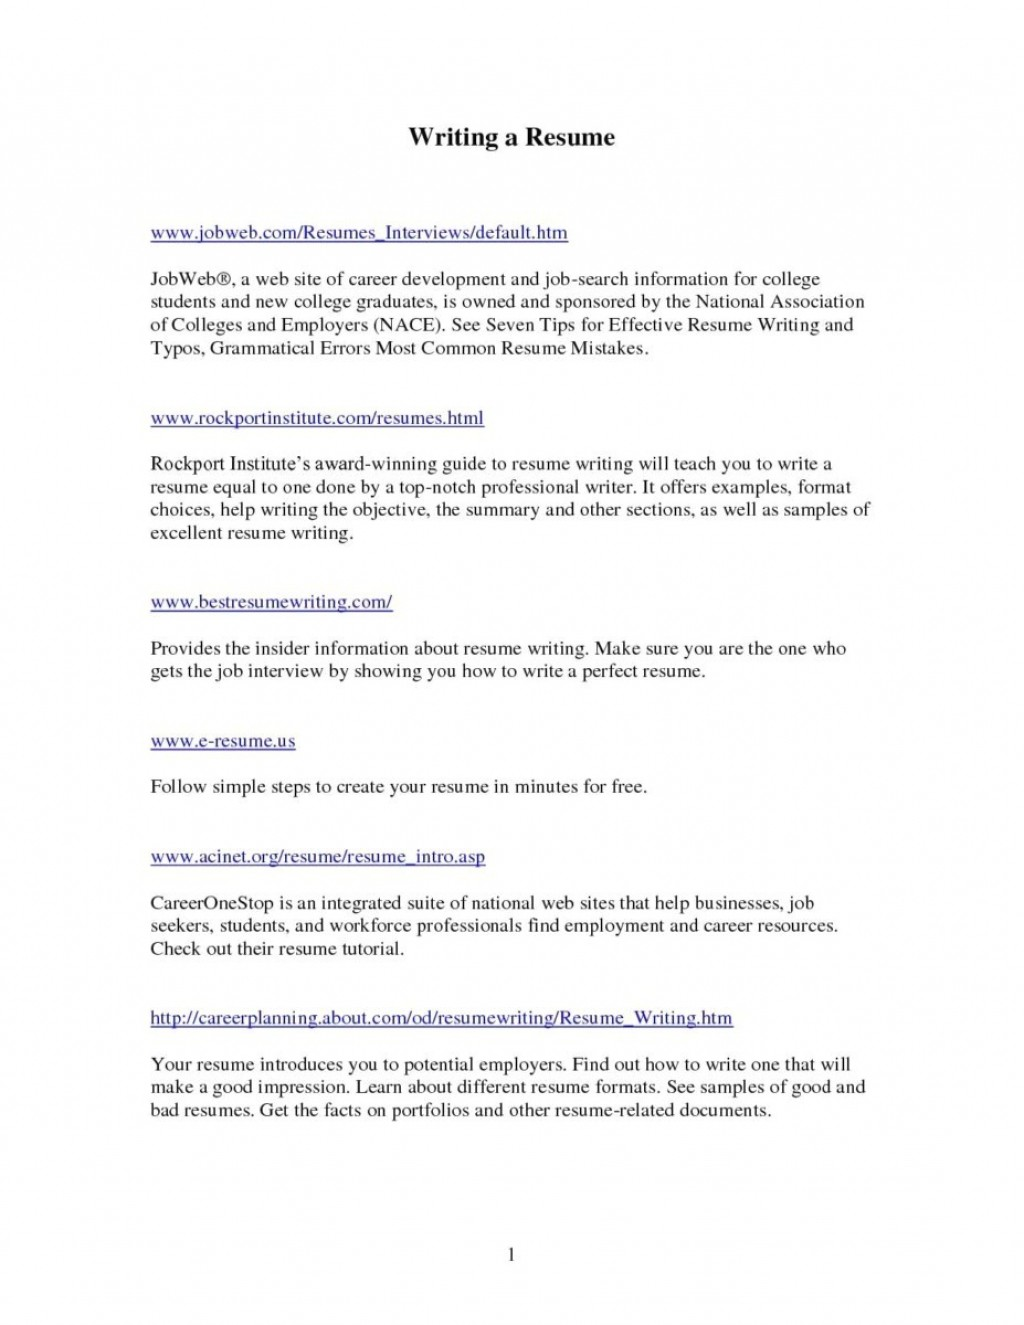 004 How To Make An Apa Research Paper Outline Resume Writing Service Reviews Format Best Writers Inspirational Help Professional Of Free Astounding For A Style Large